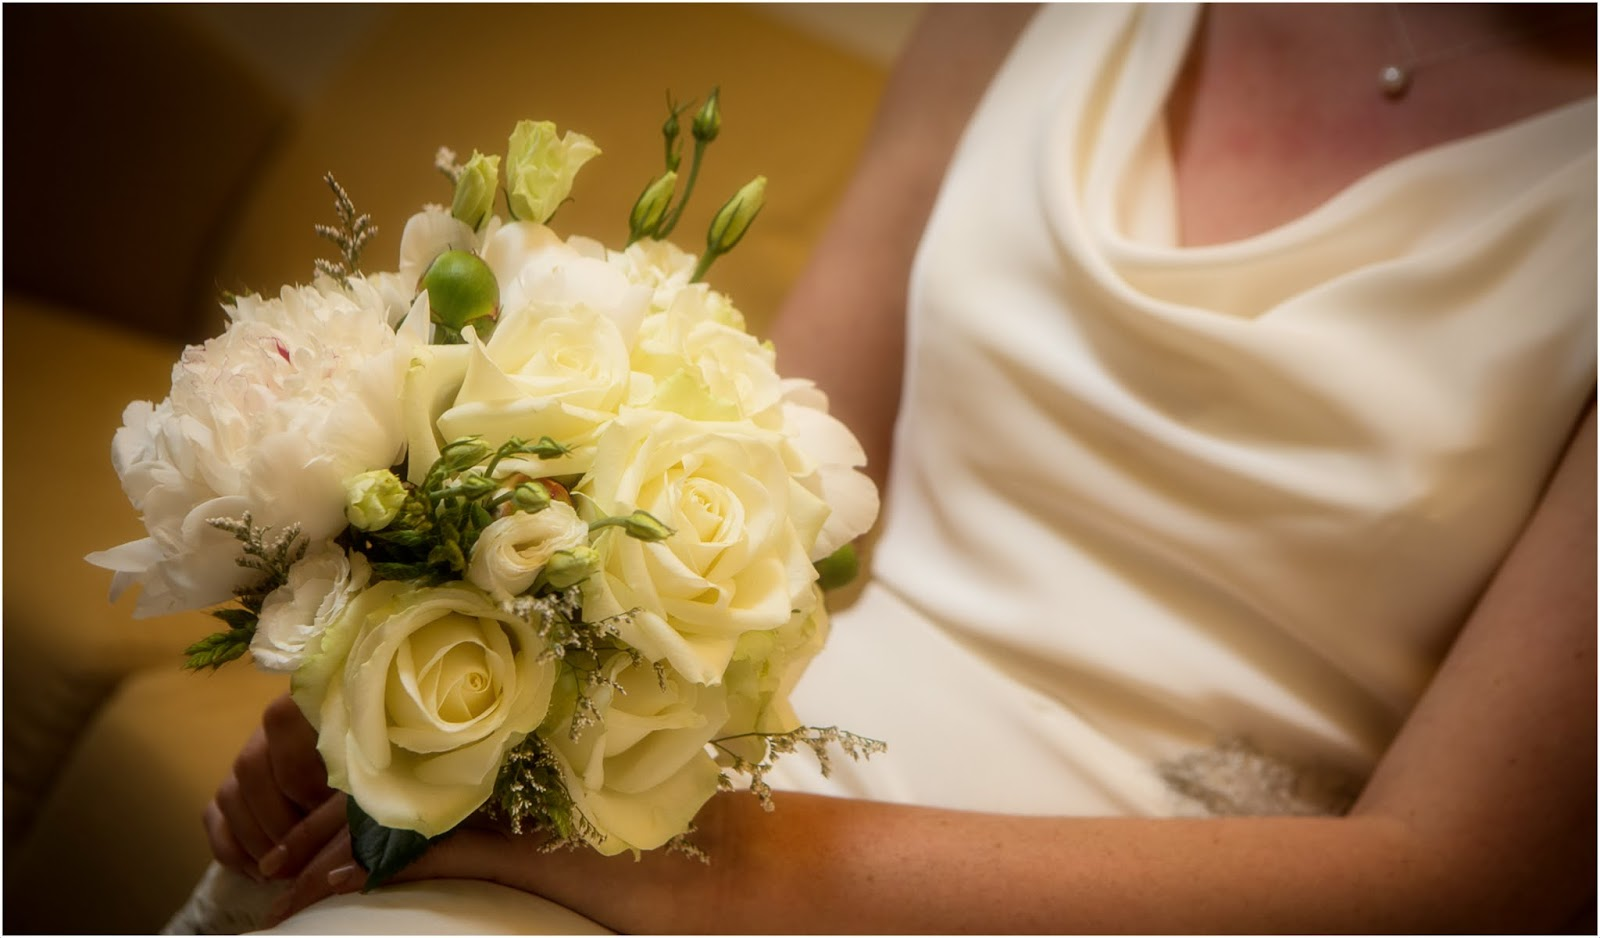 white romatic bridal bouquet with roses, lisianthus and peonies